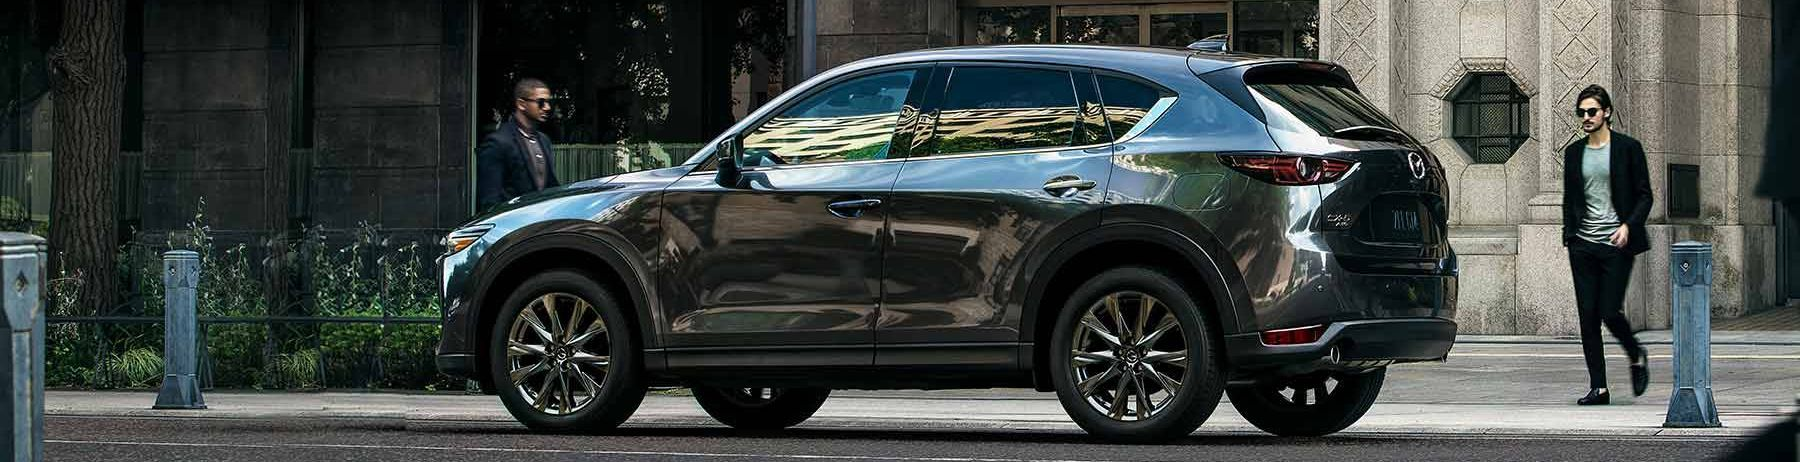 2019 Mazda CX-5 for Sale near Kingsport, TN